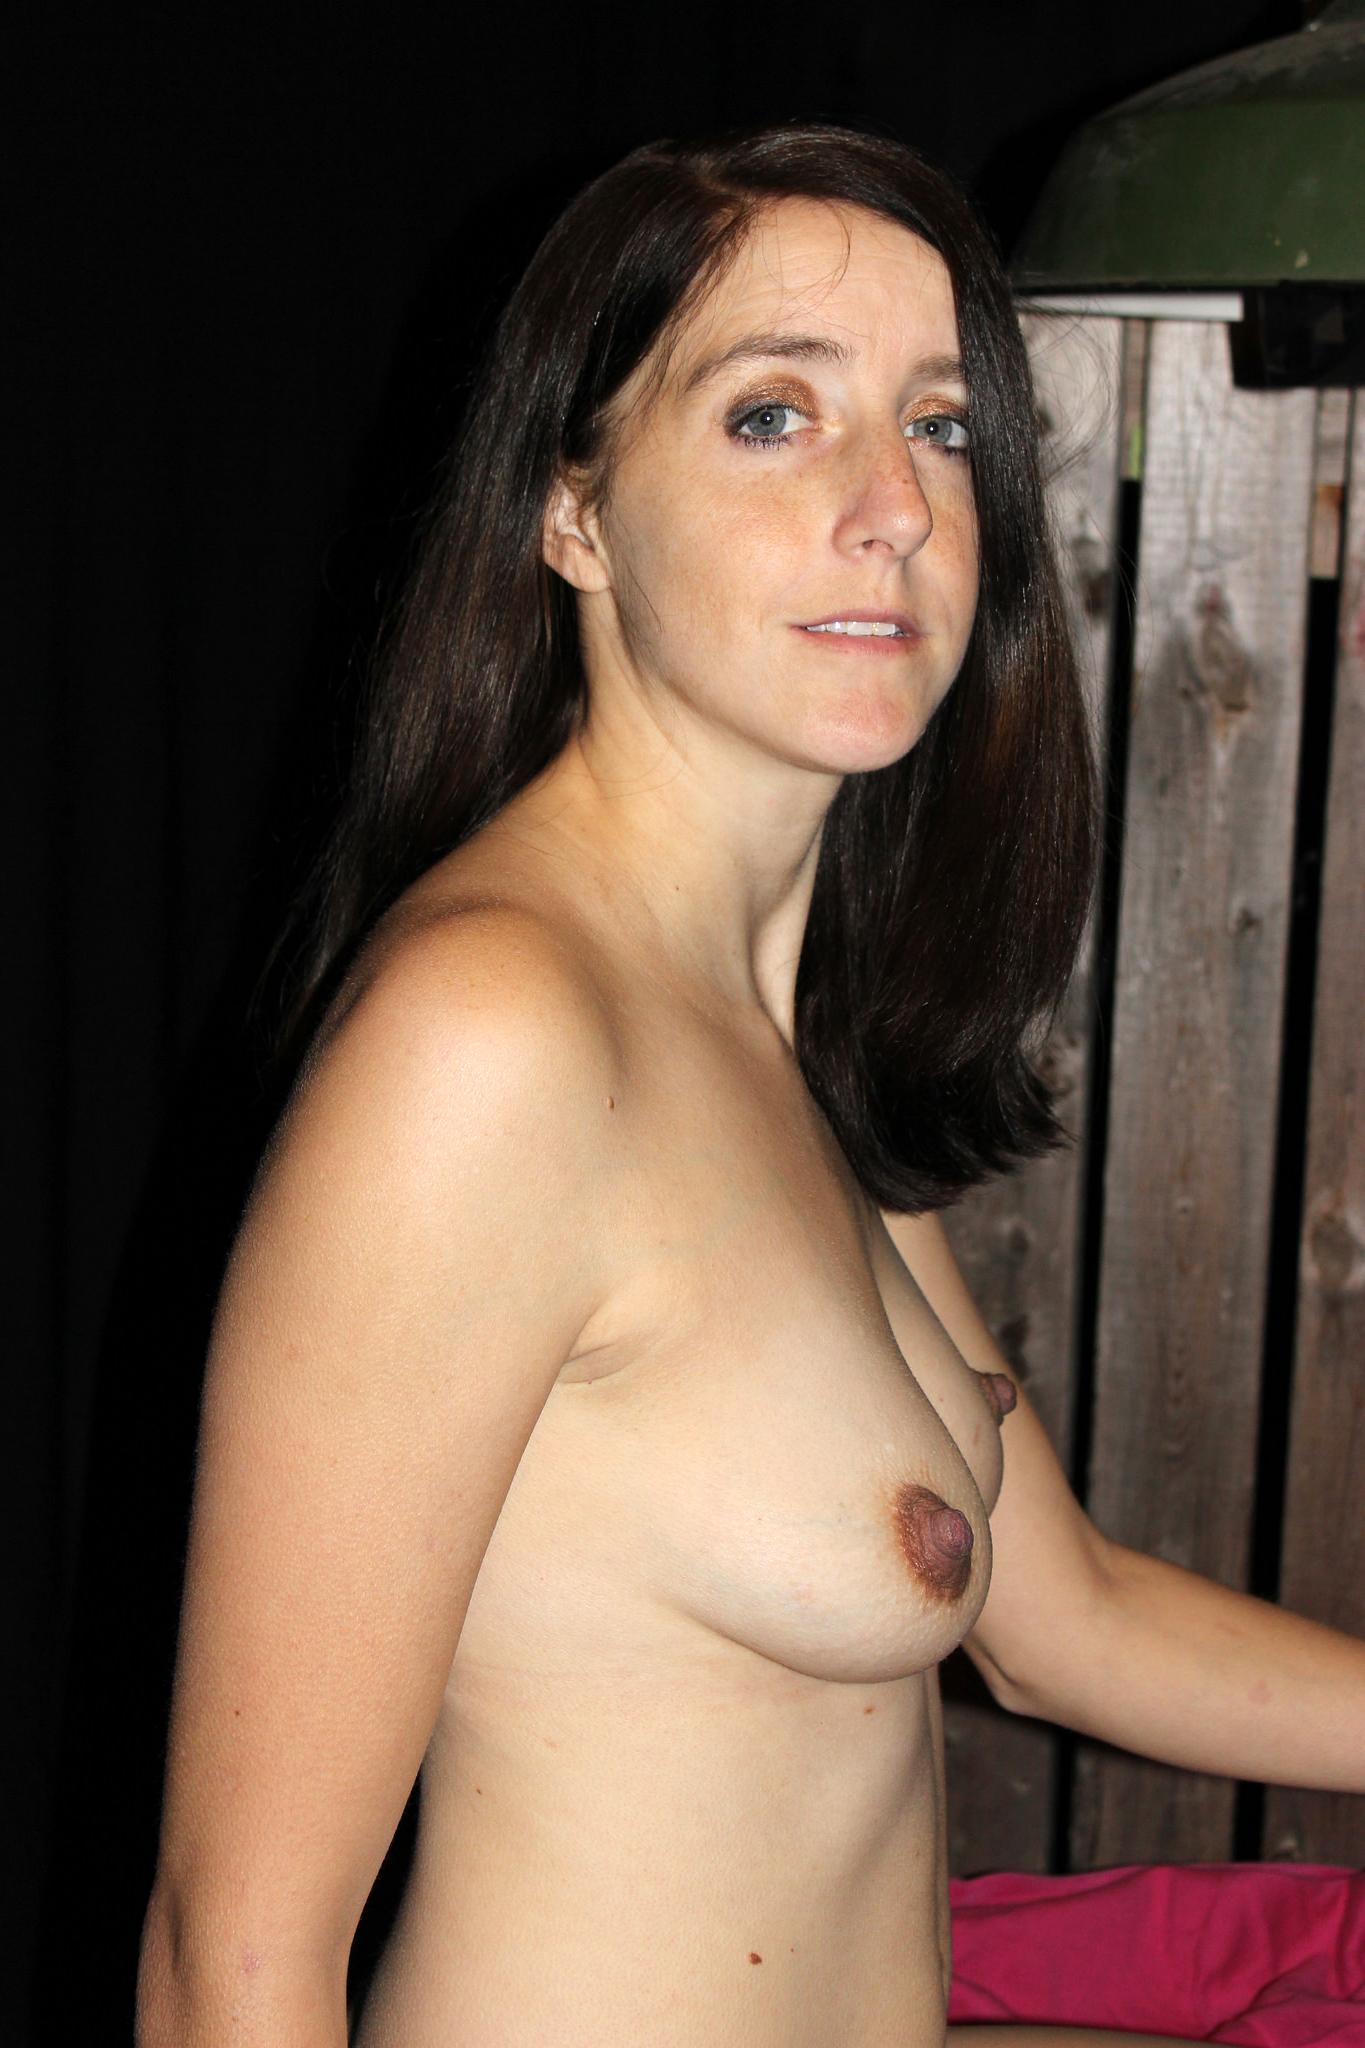 Milf free nude American and